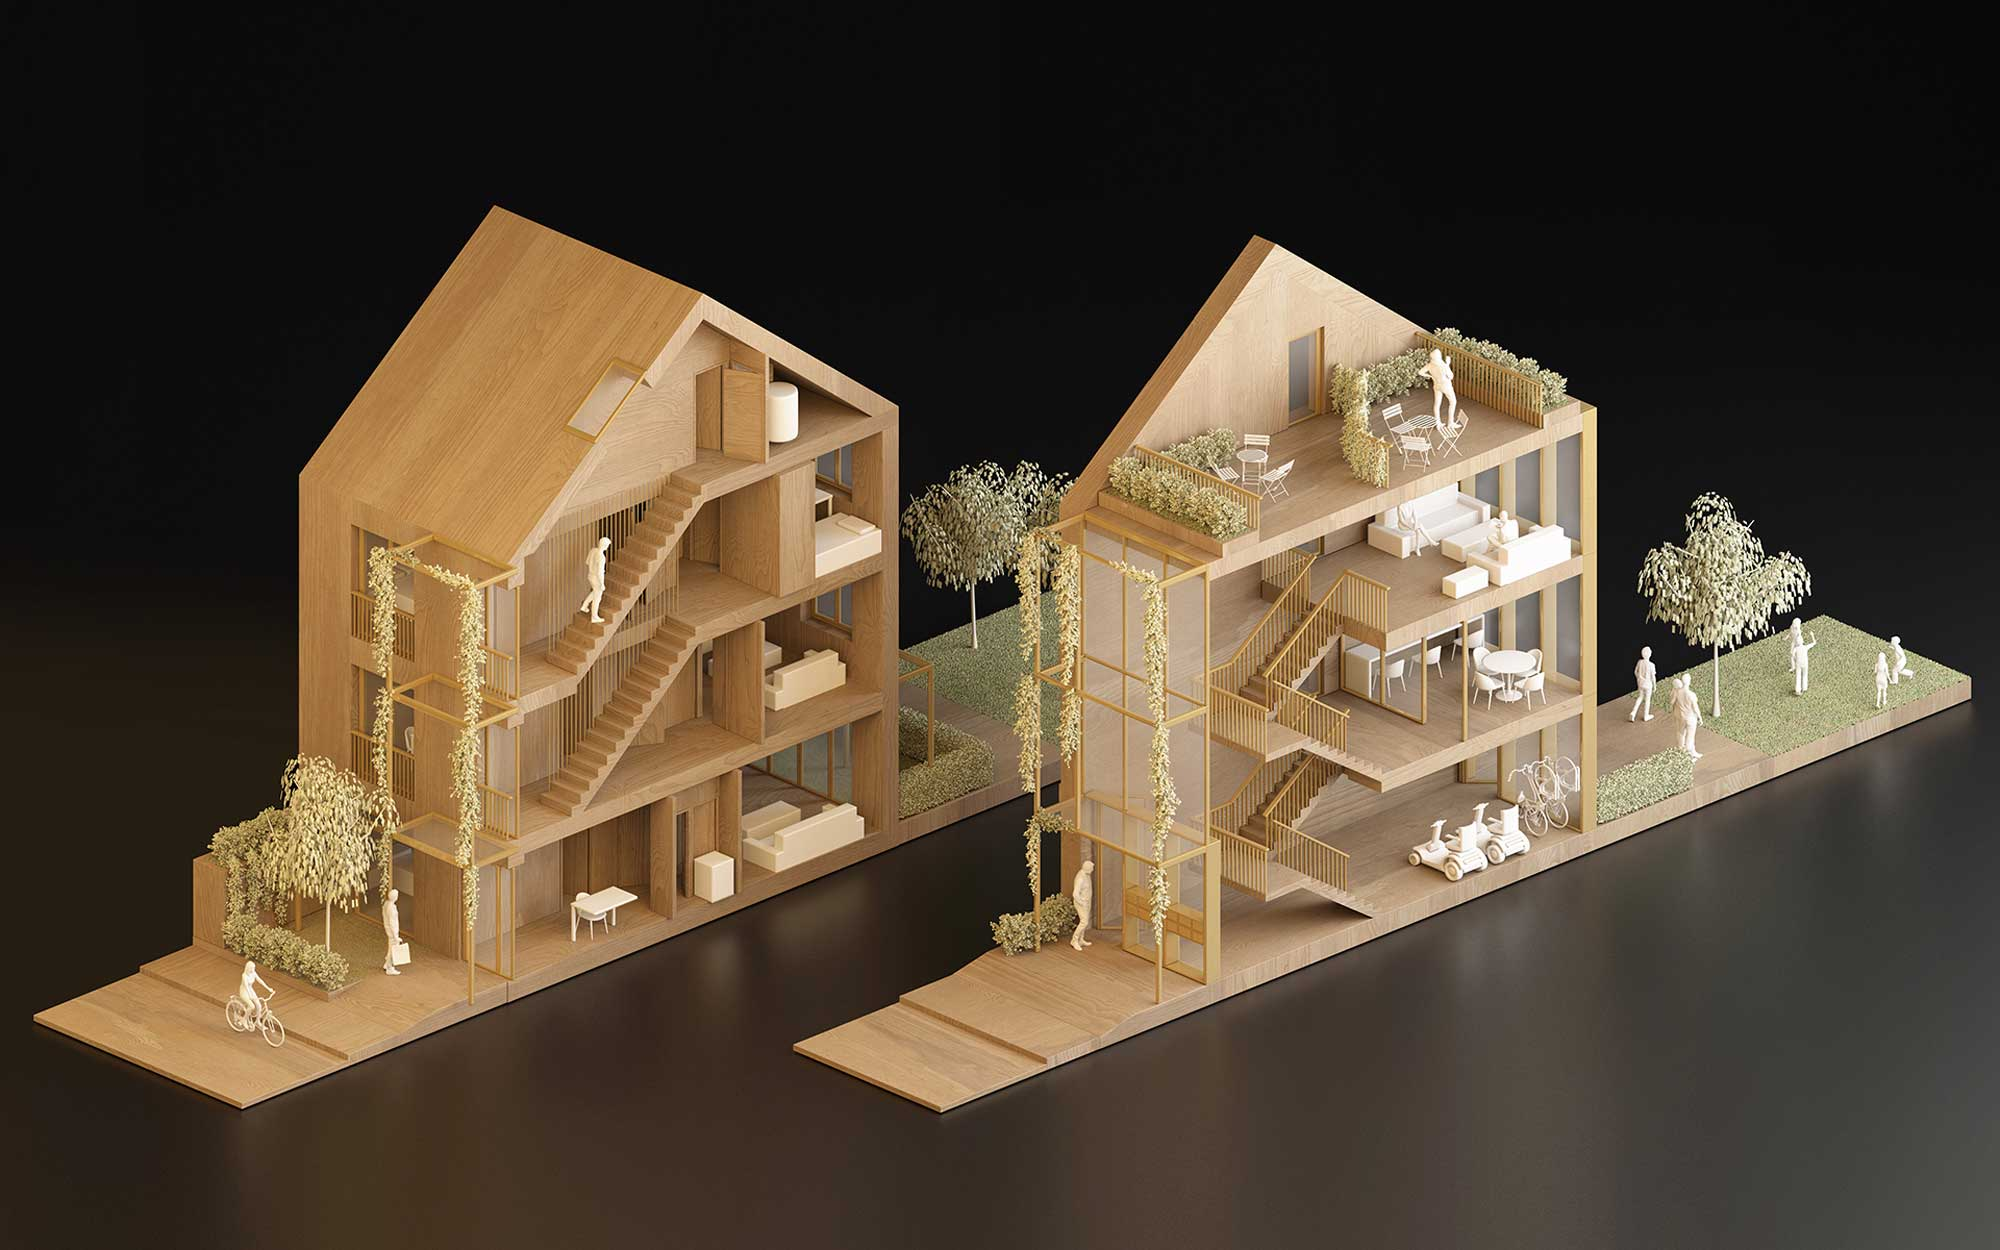 home-of-2030-RIBA-competition-finalists-openstudio-architects-connector-house